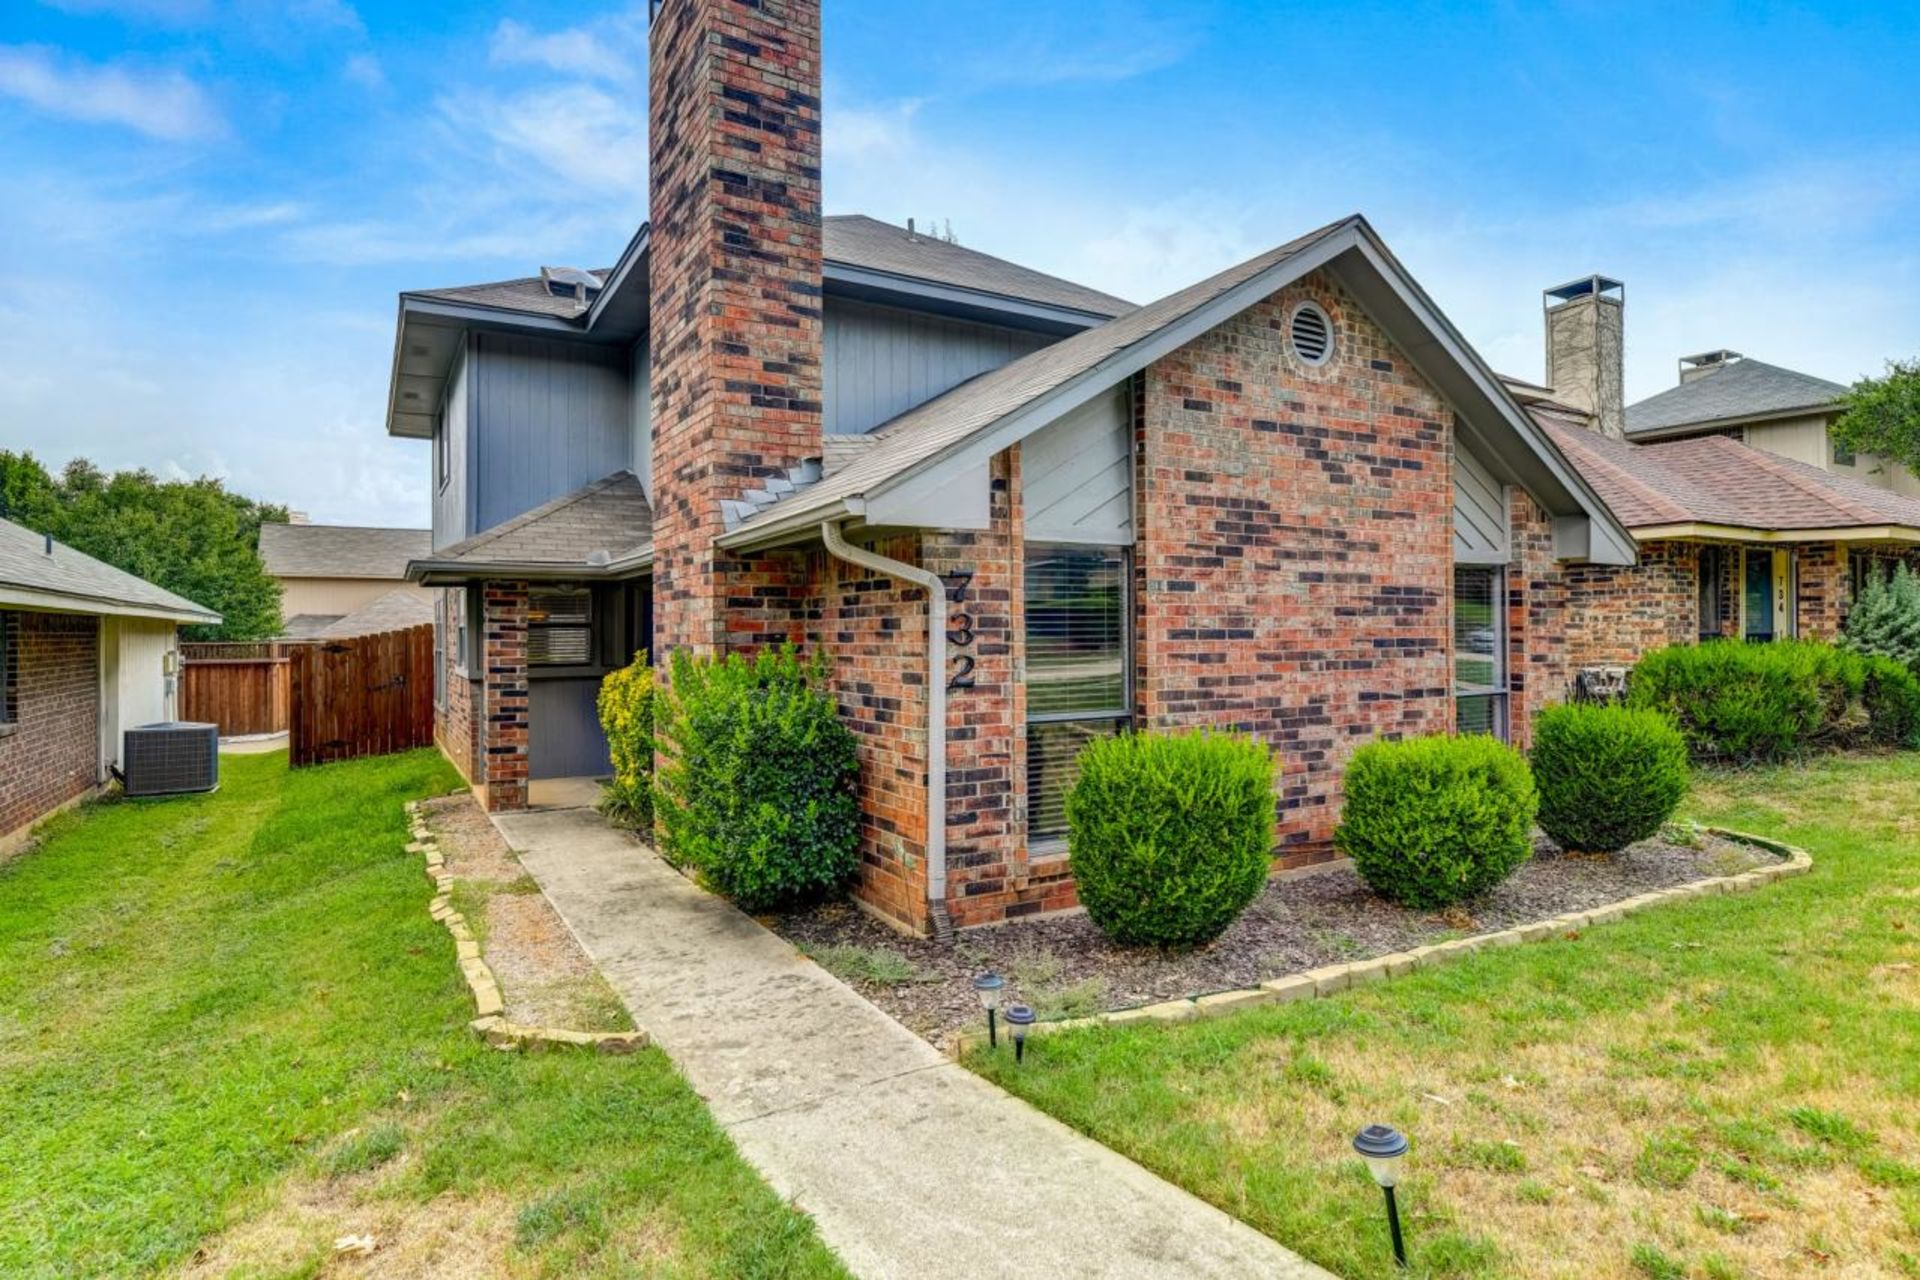 Open House For This Charming, Lewisville Texas Home For Sale. Located at: 732 Red Oak Drive, Lewisville